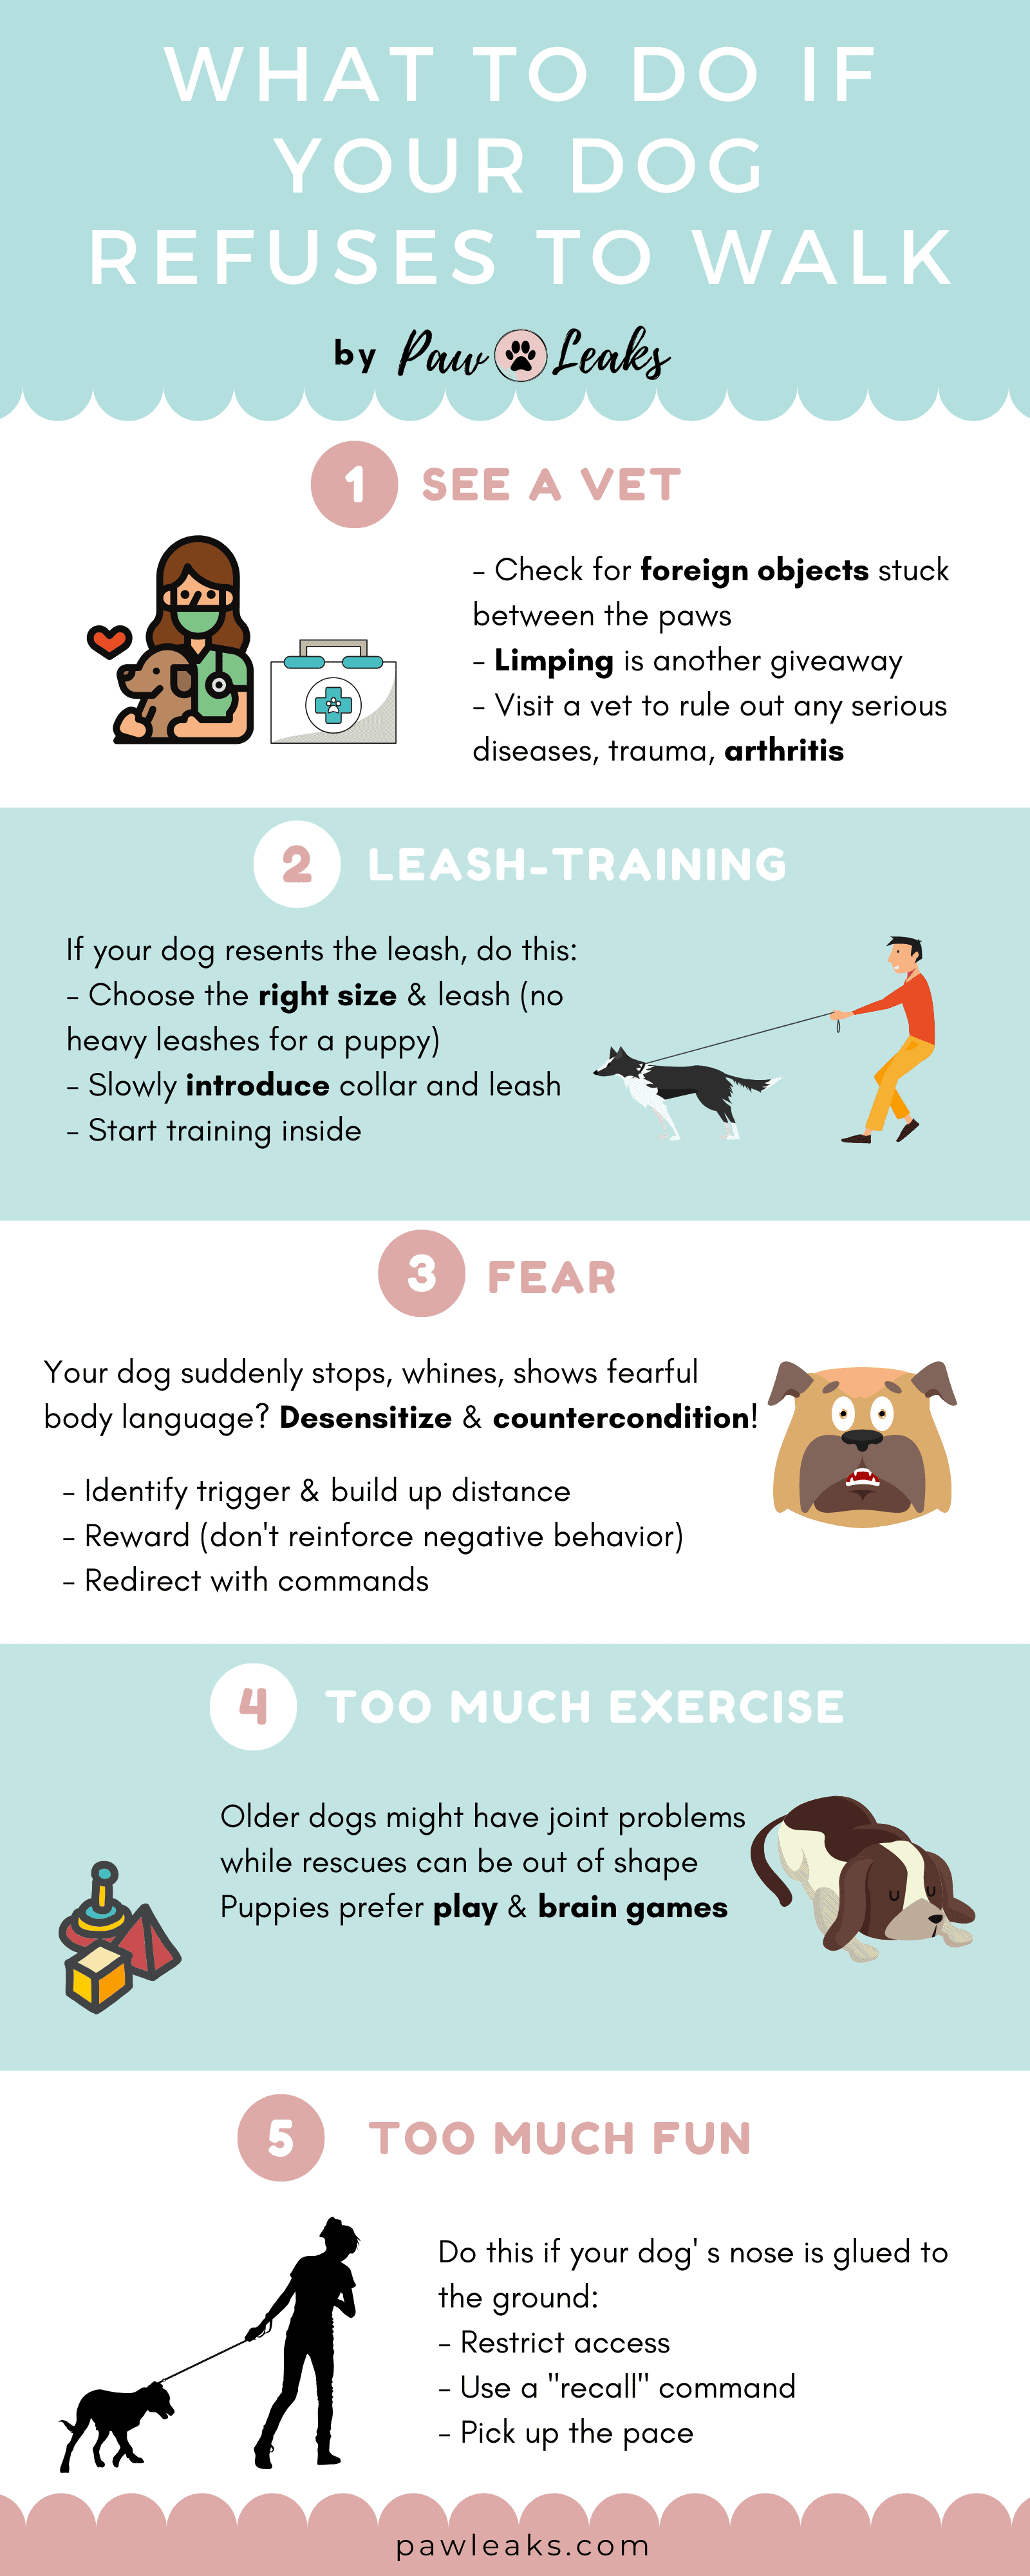 Infographic on five steps to follow if your dog refuses to walk.